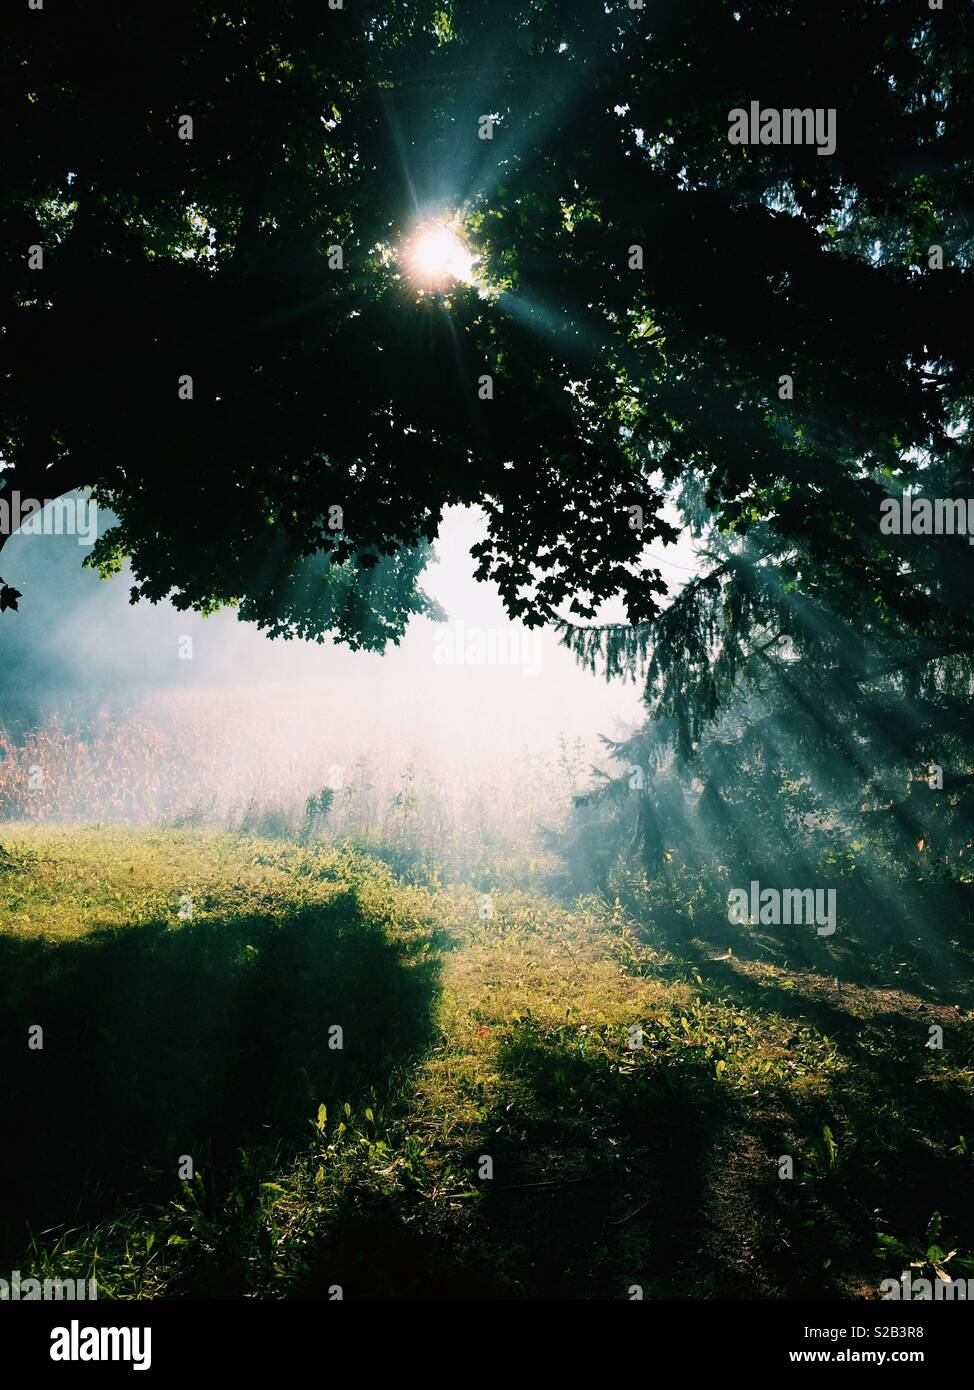 Sun flare thru trees in a rural setting. - Stock Image